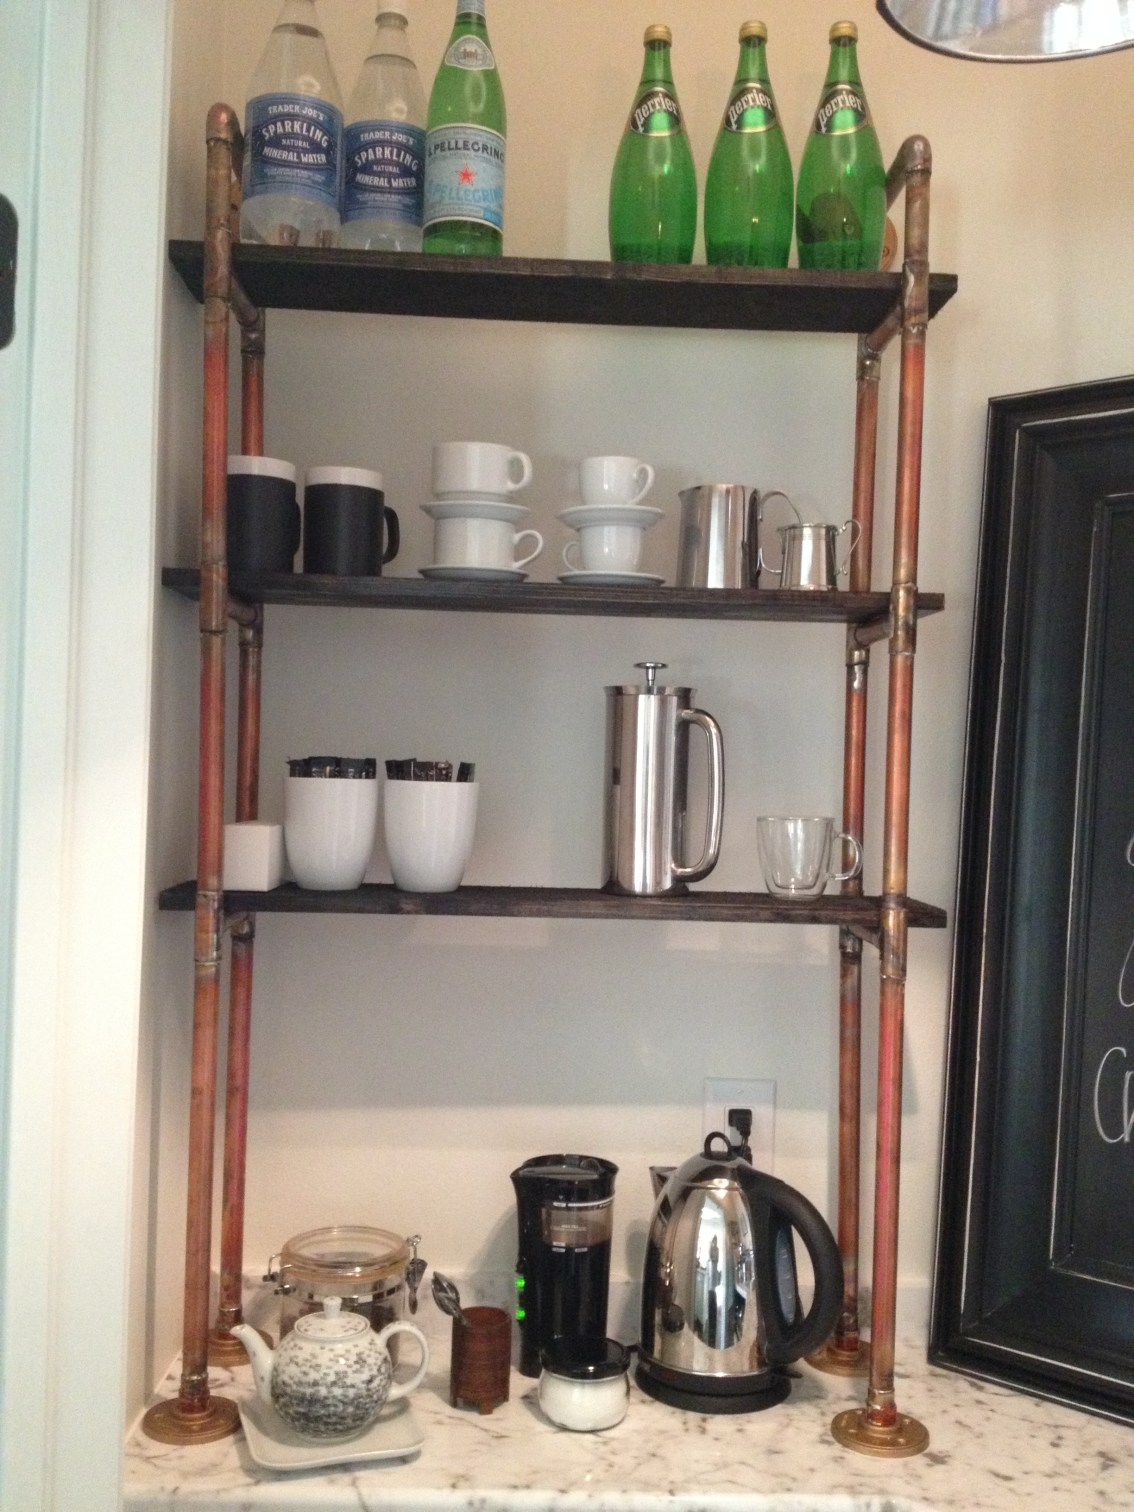 No More Wire Shelves! How To Change Up A Standard Pantry – Before & After 9.12.18